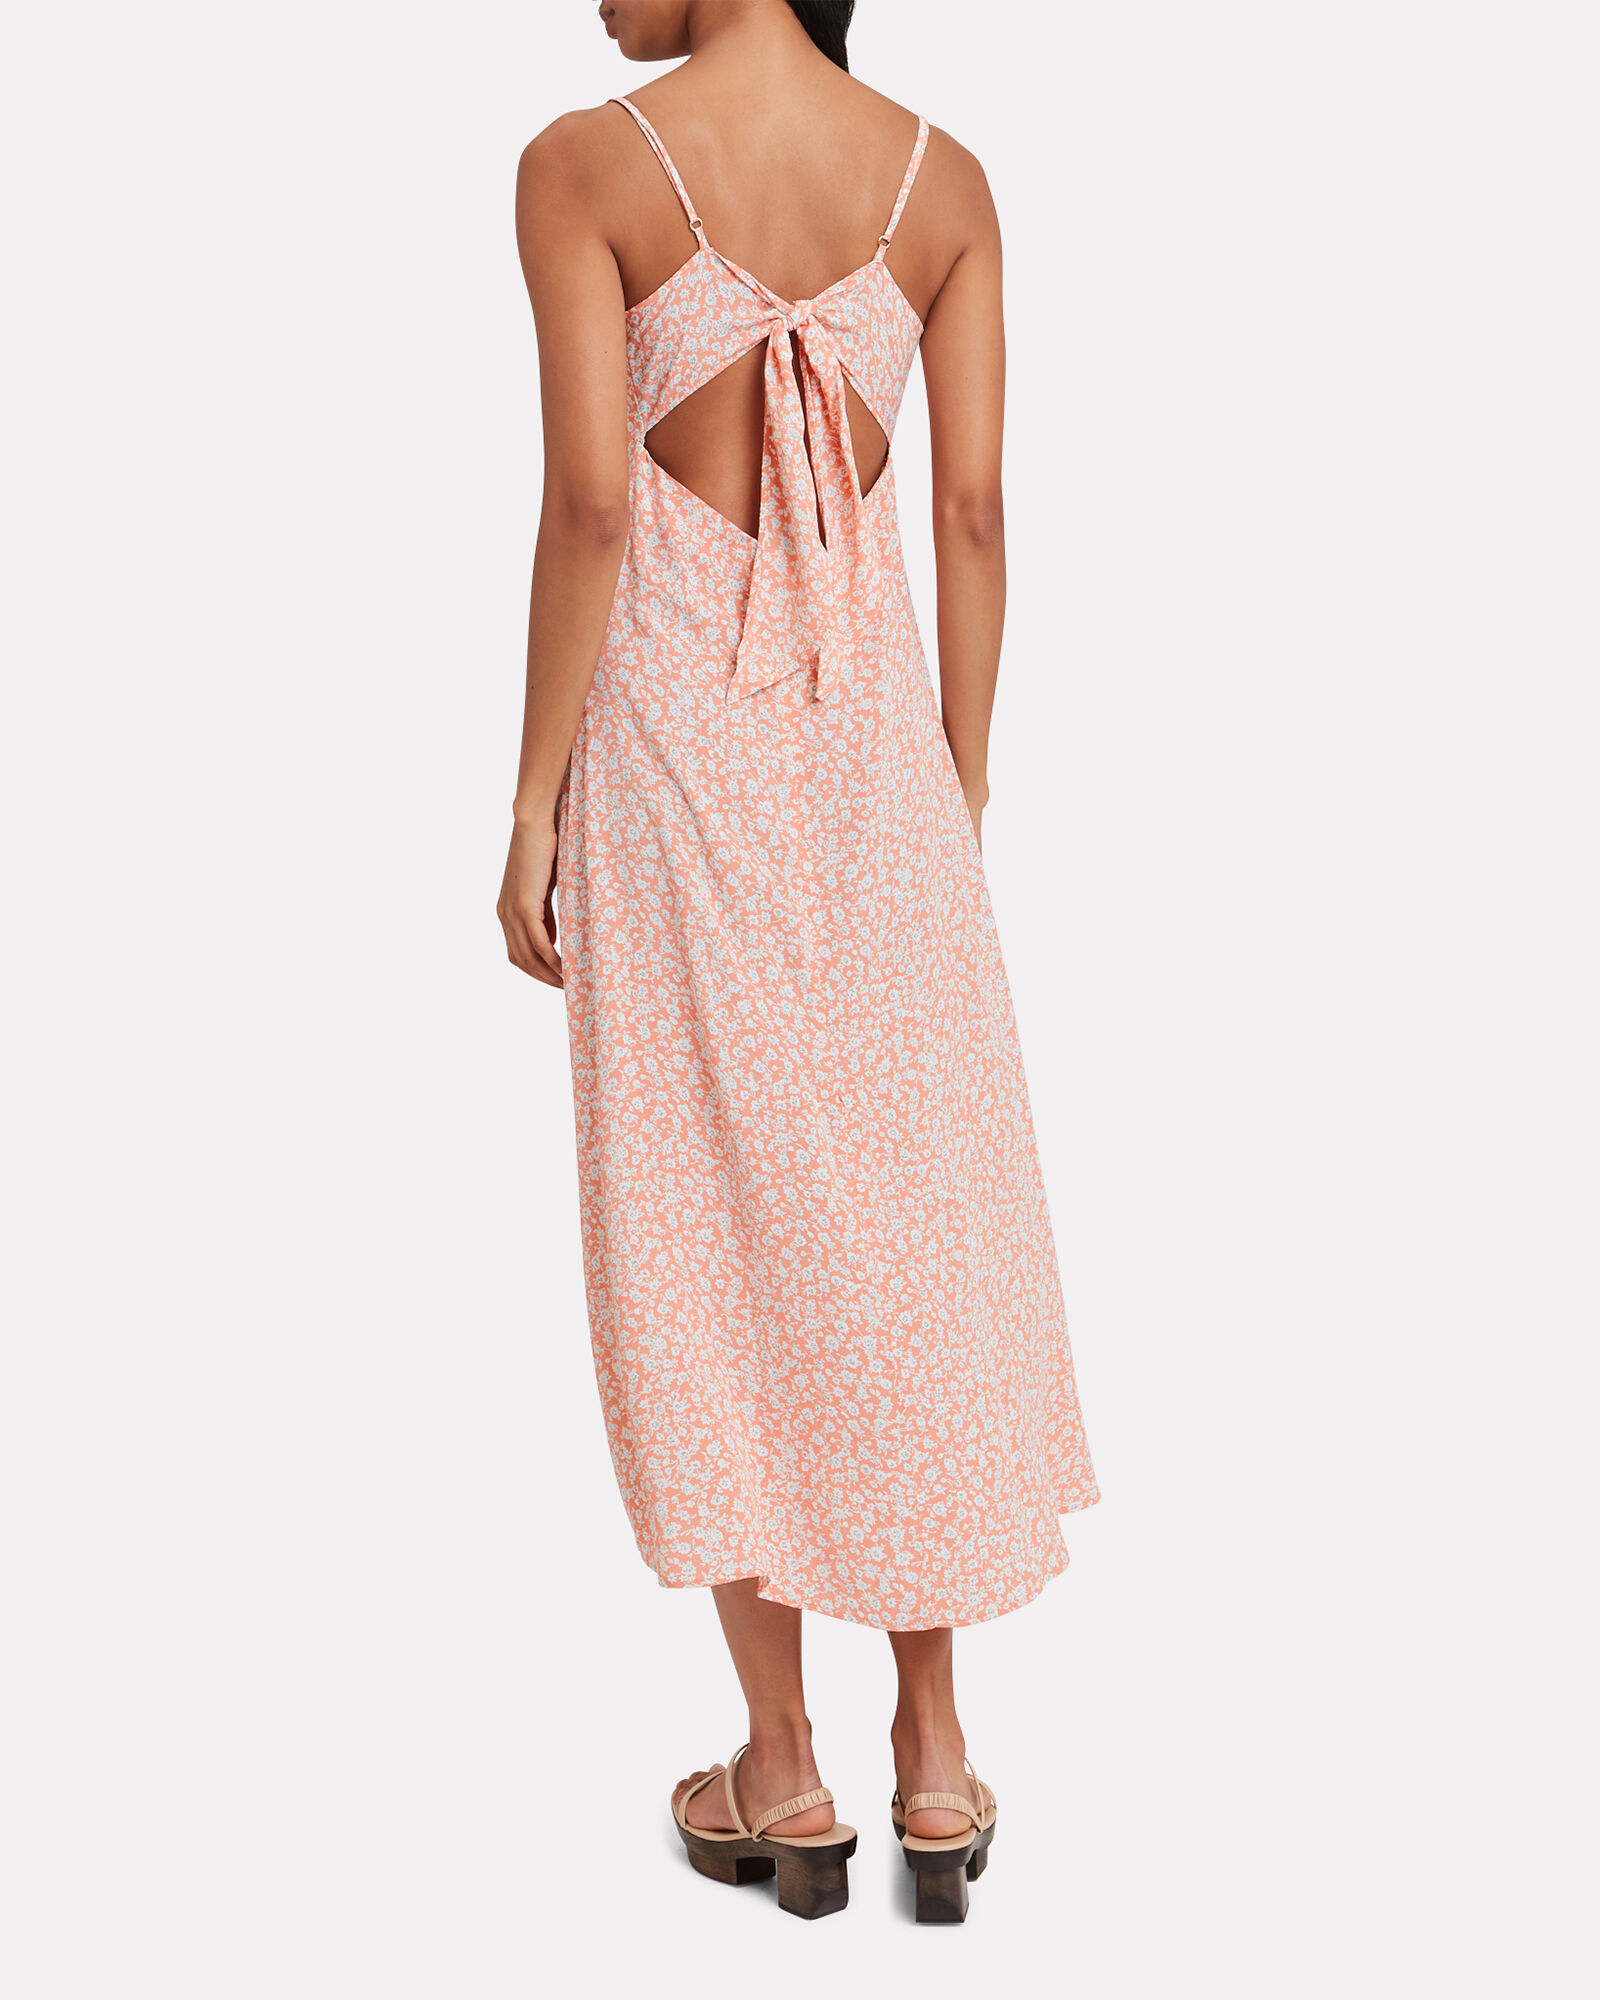 Jules Sleeveless Floral Dress, PEACH/FLORAL, hi-res